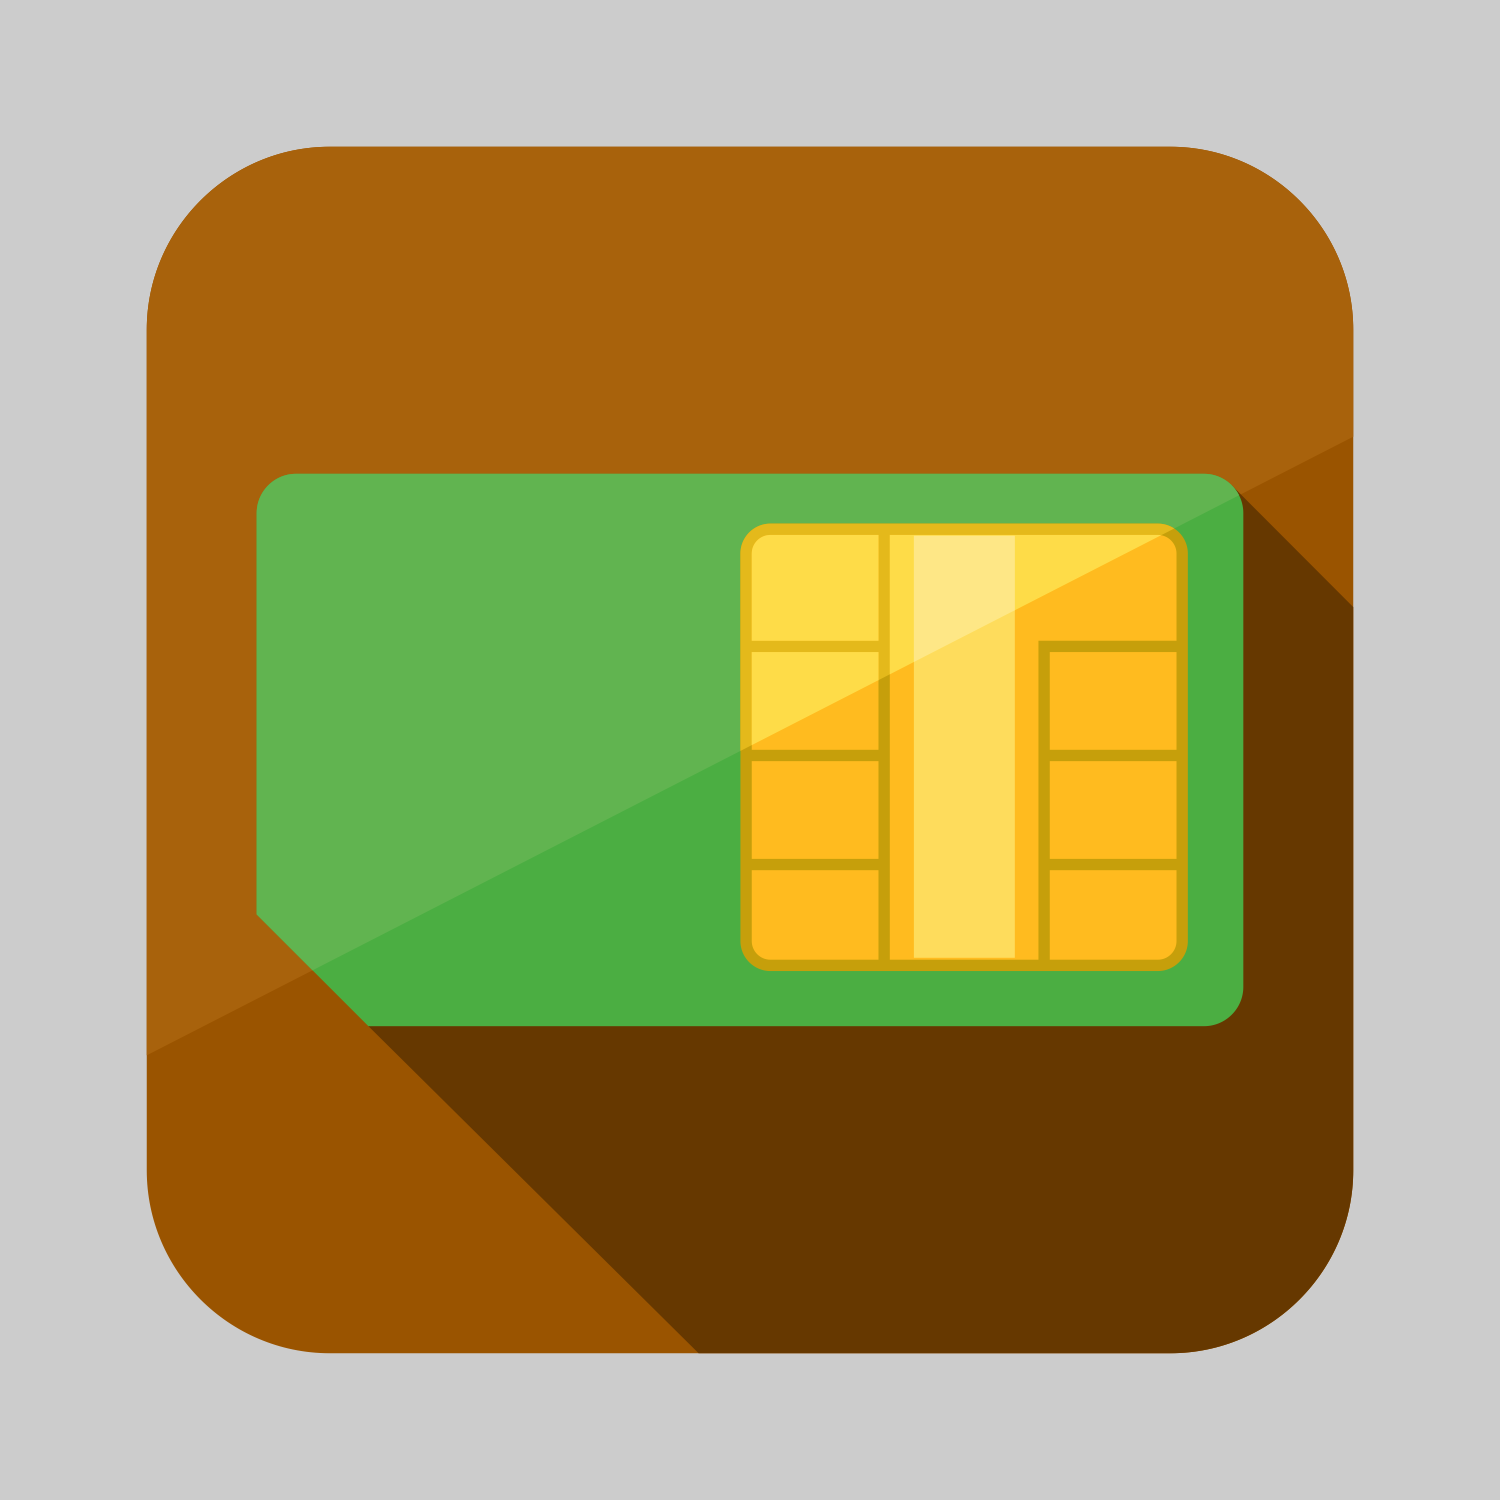 Vector for free use: SIM card icon